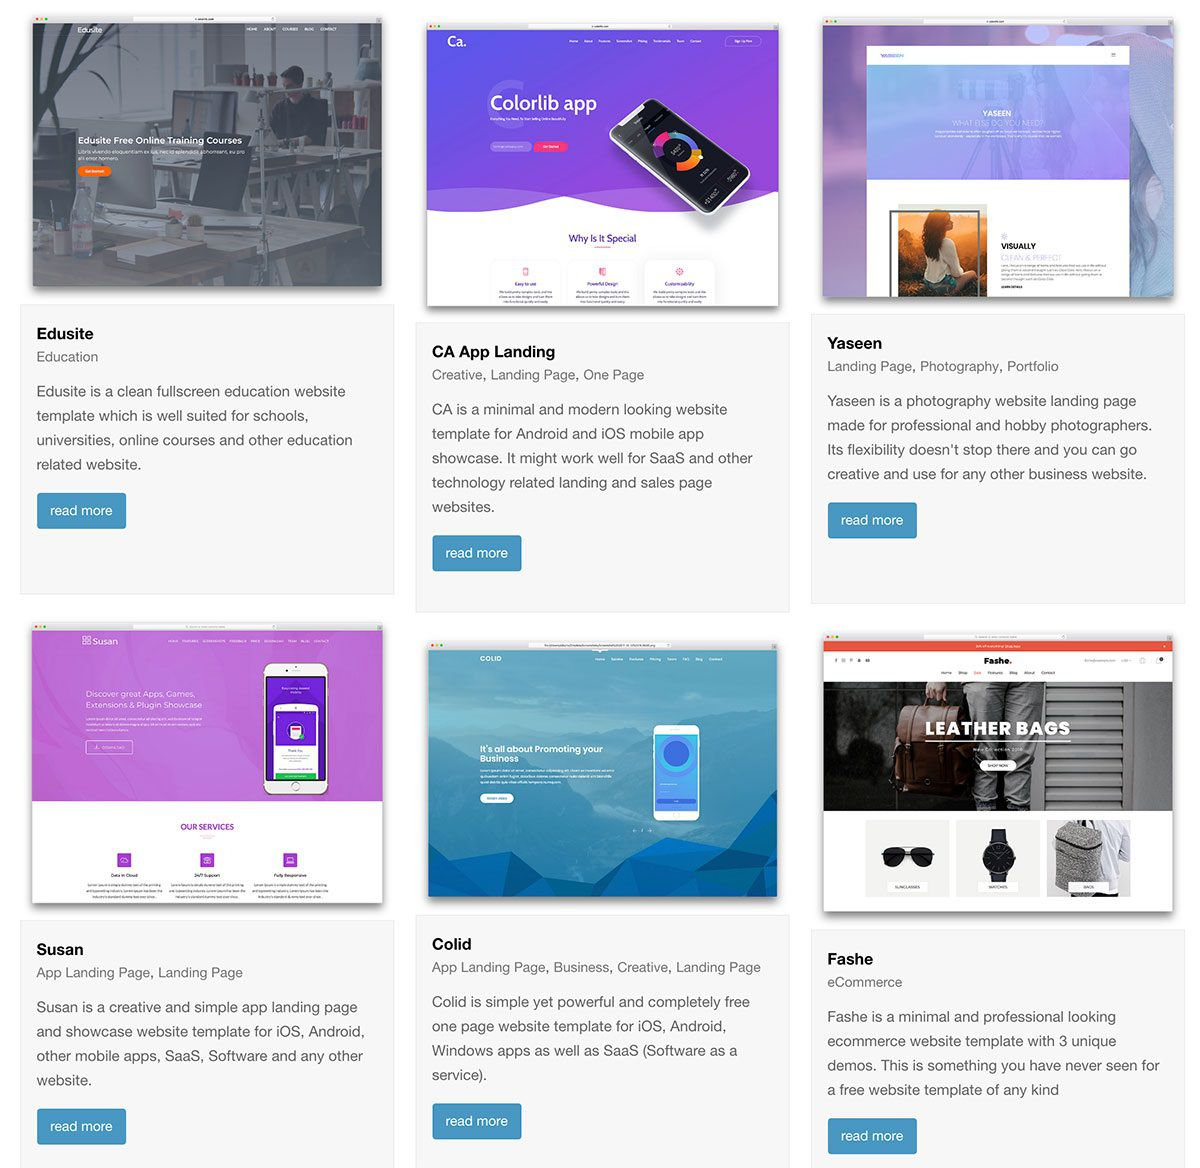 005 Frightening Web Page Template Html Free Download Idea  One Website Cs SingleFull